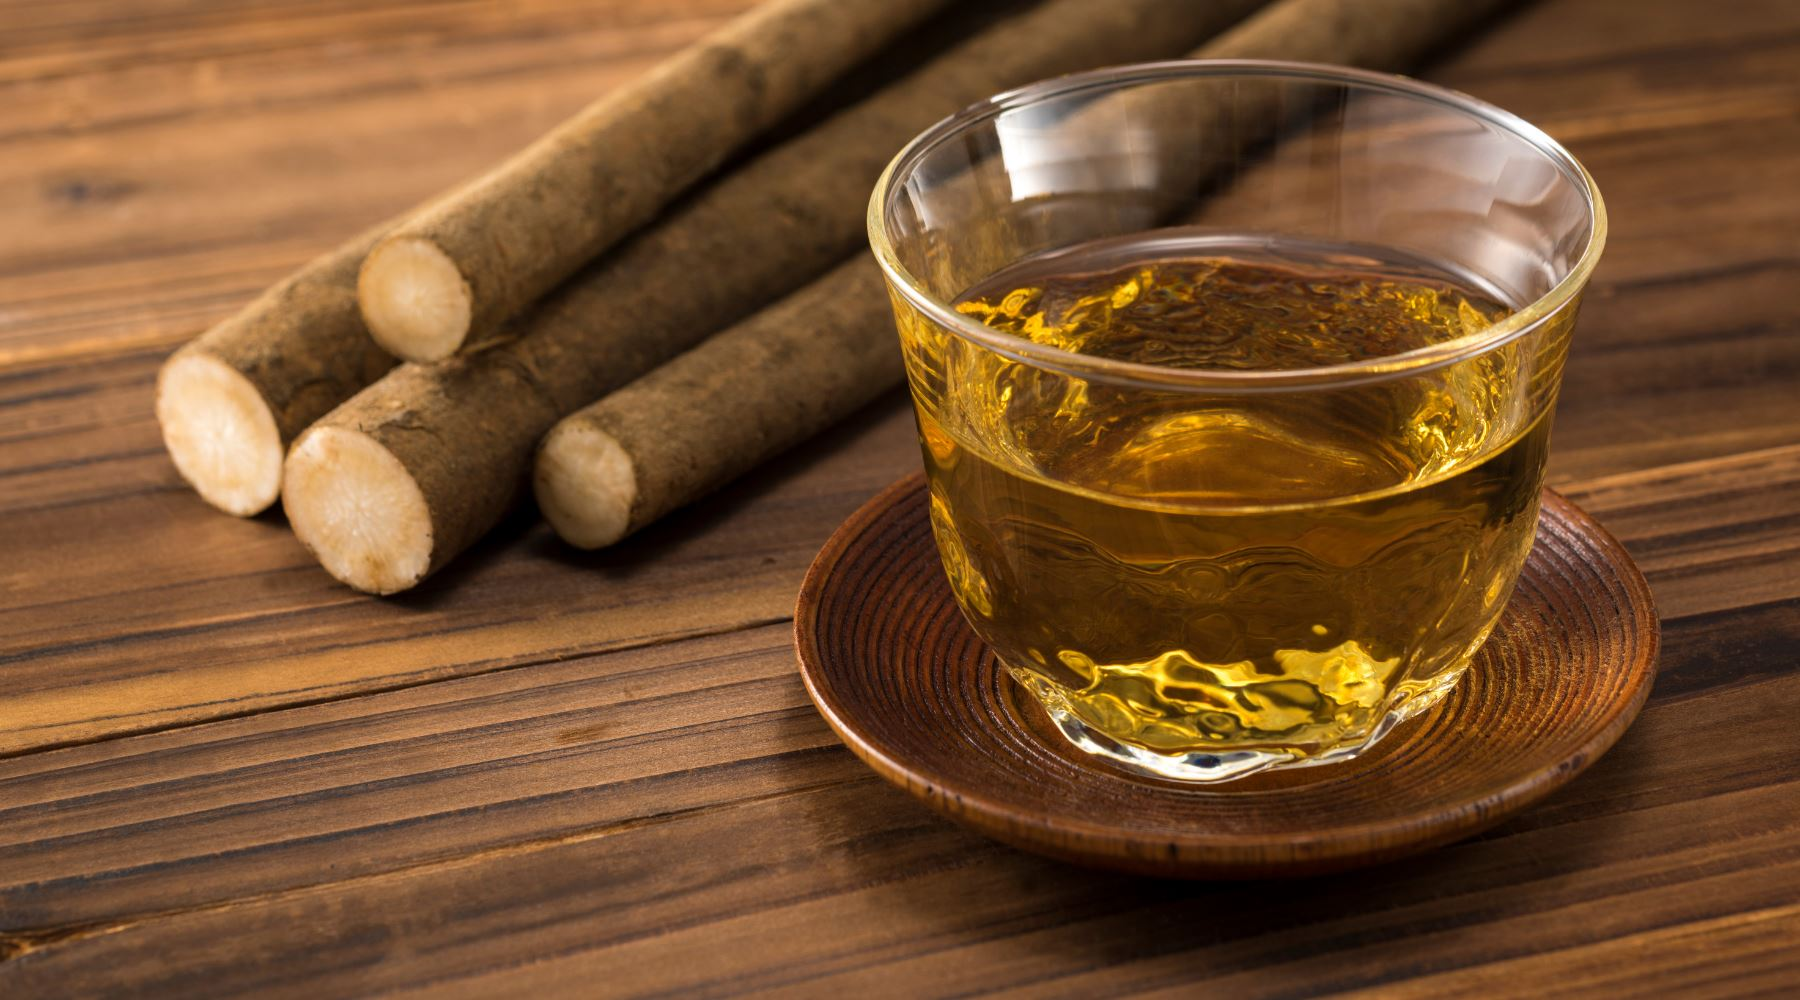 8 Health Benefits of Burdock Tea You Should Know